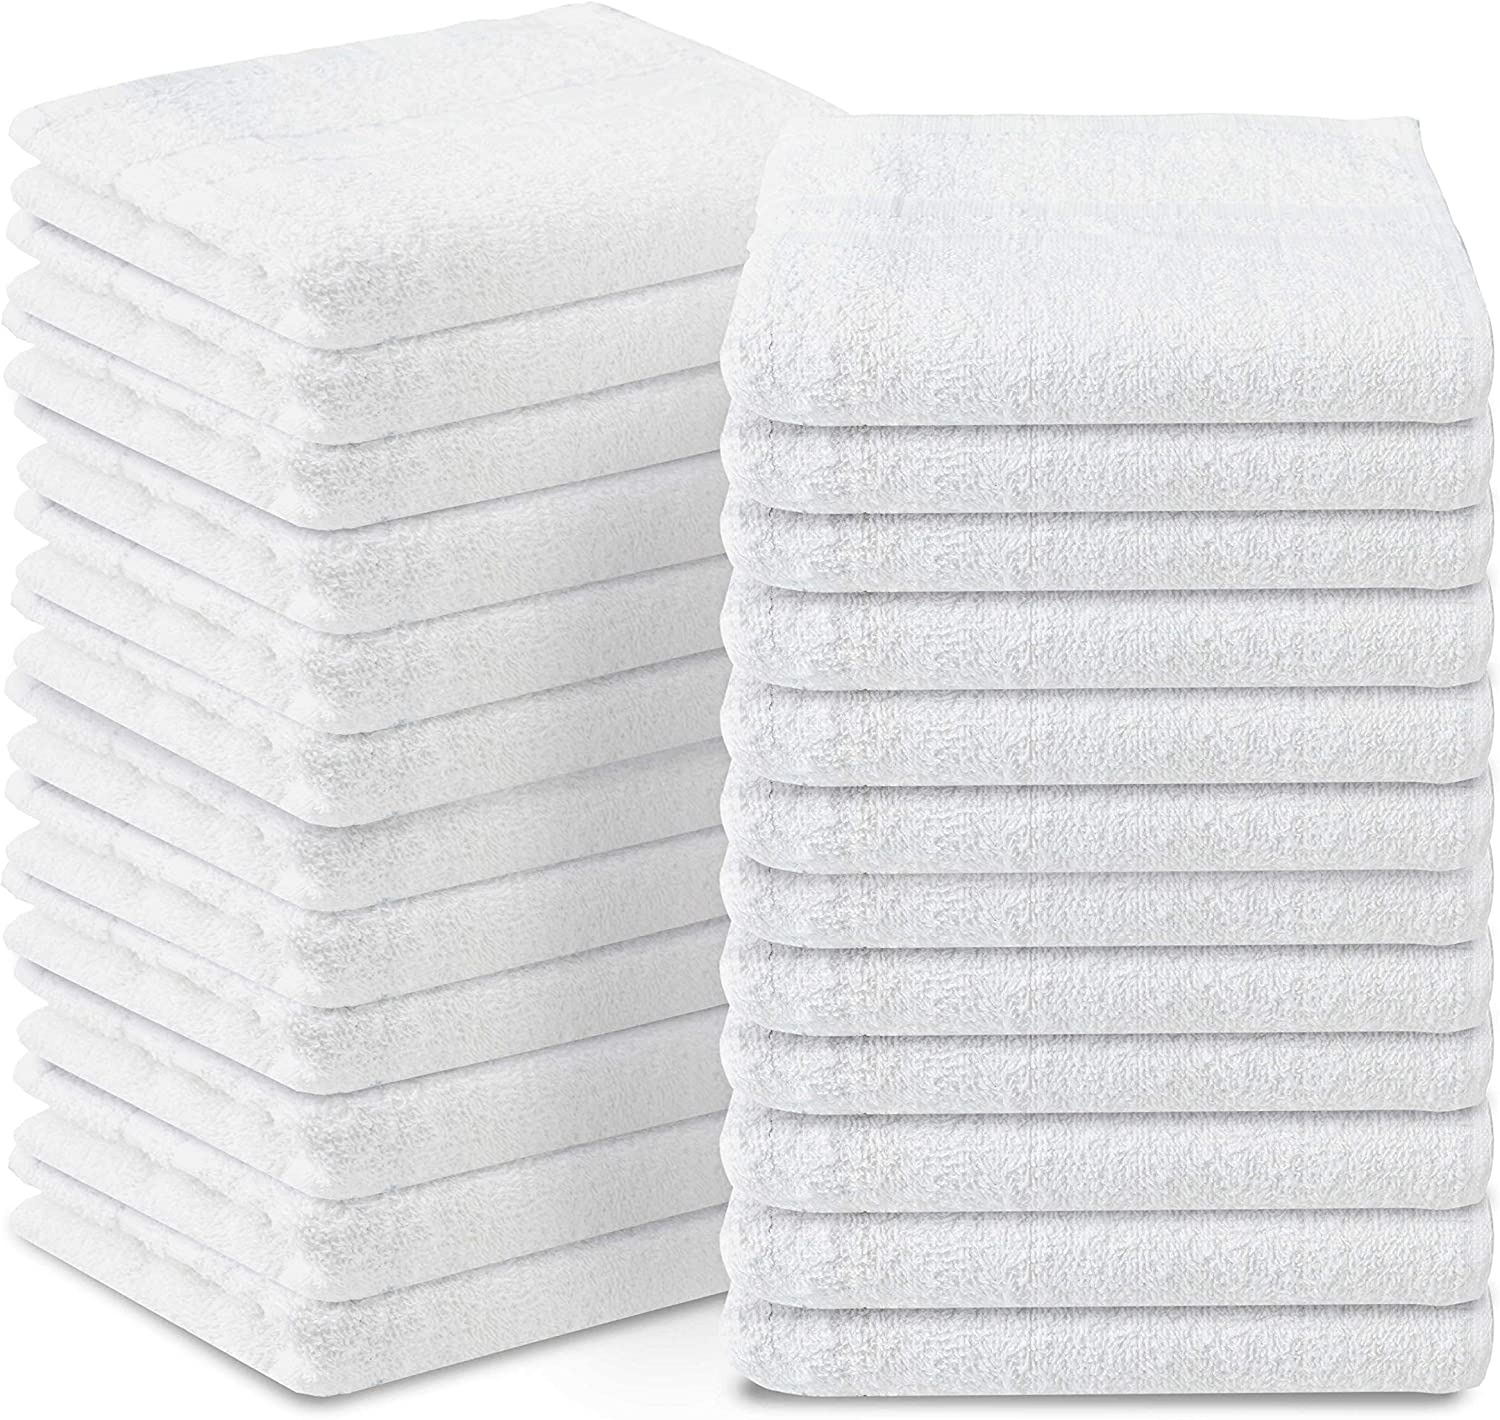 FEBRONA 16x27 White 100% Ring Spun Cotton, Ultra Soft & Highly Absorbent, Hotel & Spa Quality Hand Towels, Quick Dry & Highly Absorbent, Hotel Quality Towel for Gym, Salon, Spa & Home Care, Pack of 24